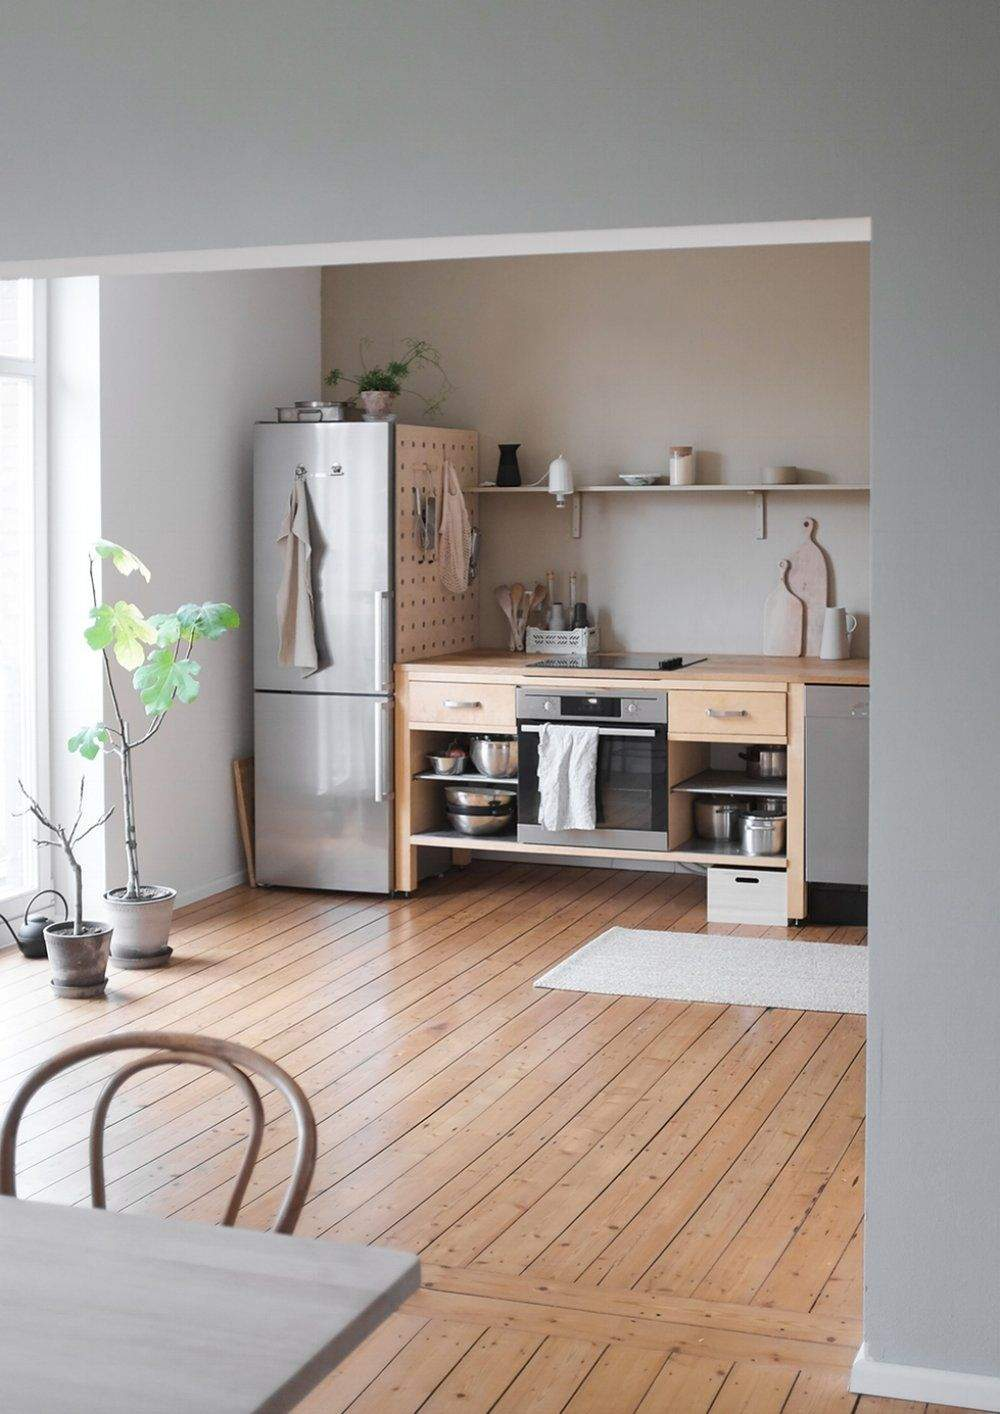 Hygge Wohnzimmer Genial tour the Hygge Home Of Swantje Hinrichsen